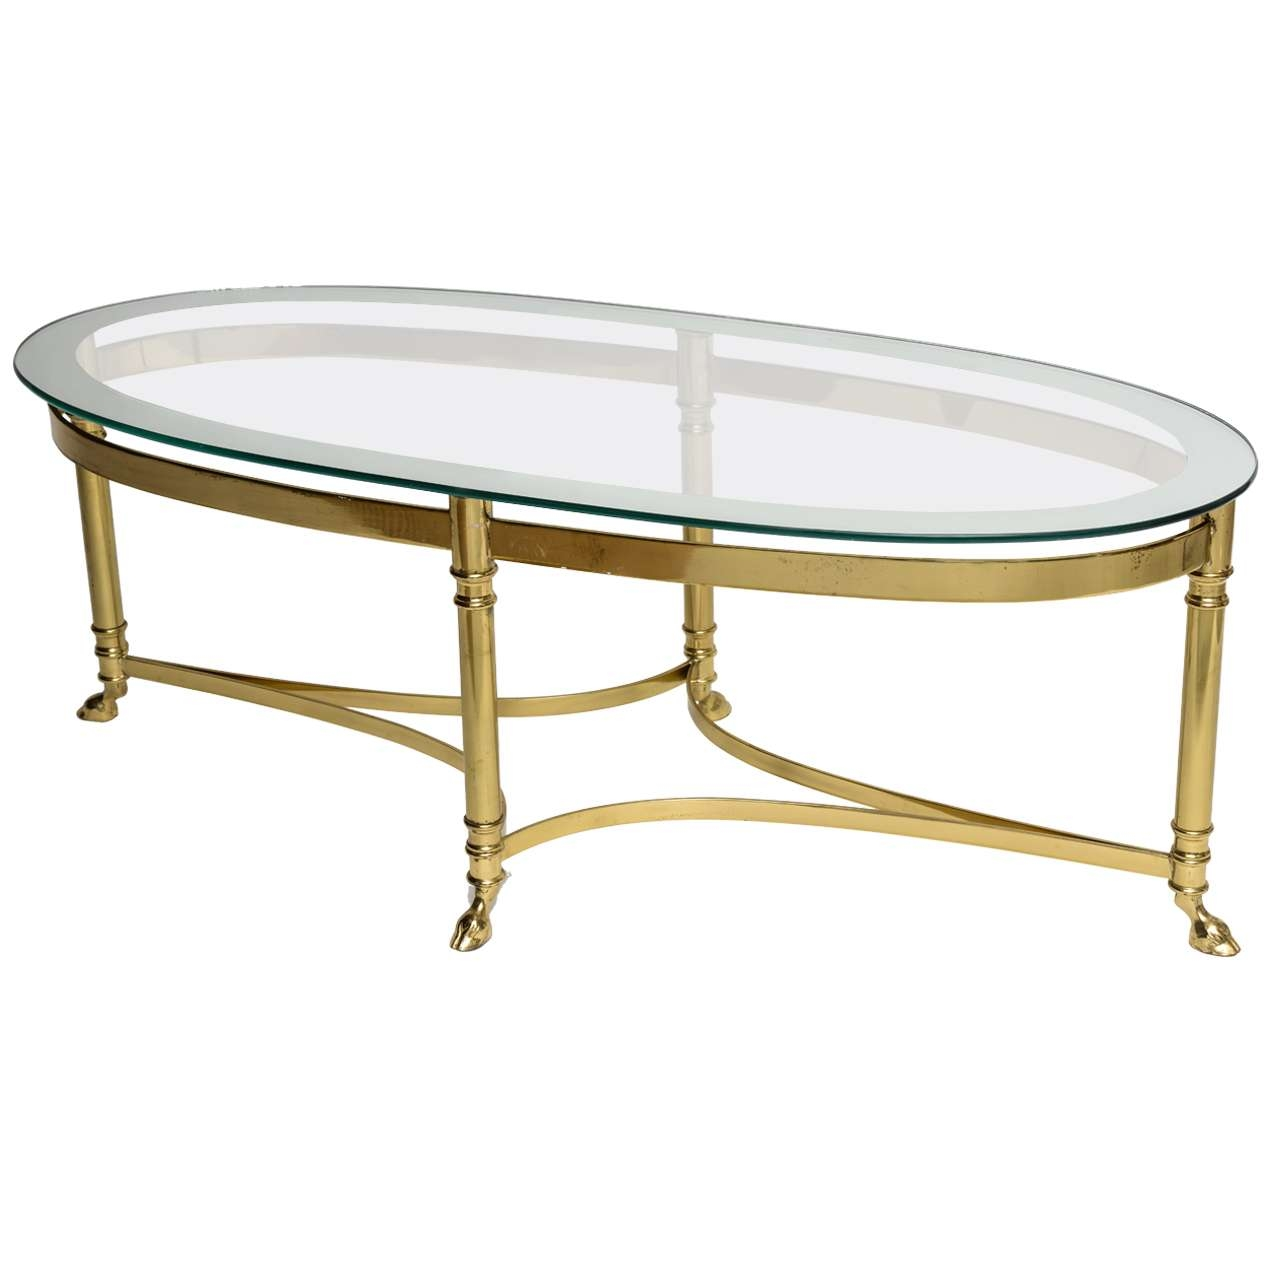 Newest Vintage Glass Coffee Tables With Coffee Table: Stunning Oval Glass Coffee Table Ideas Small Coffee (View 10 of 20)